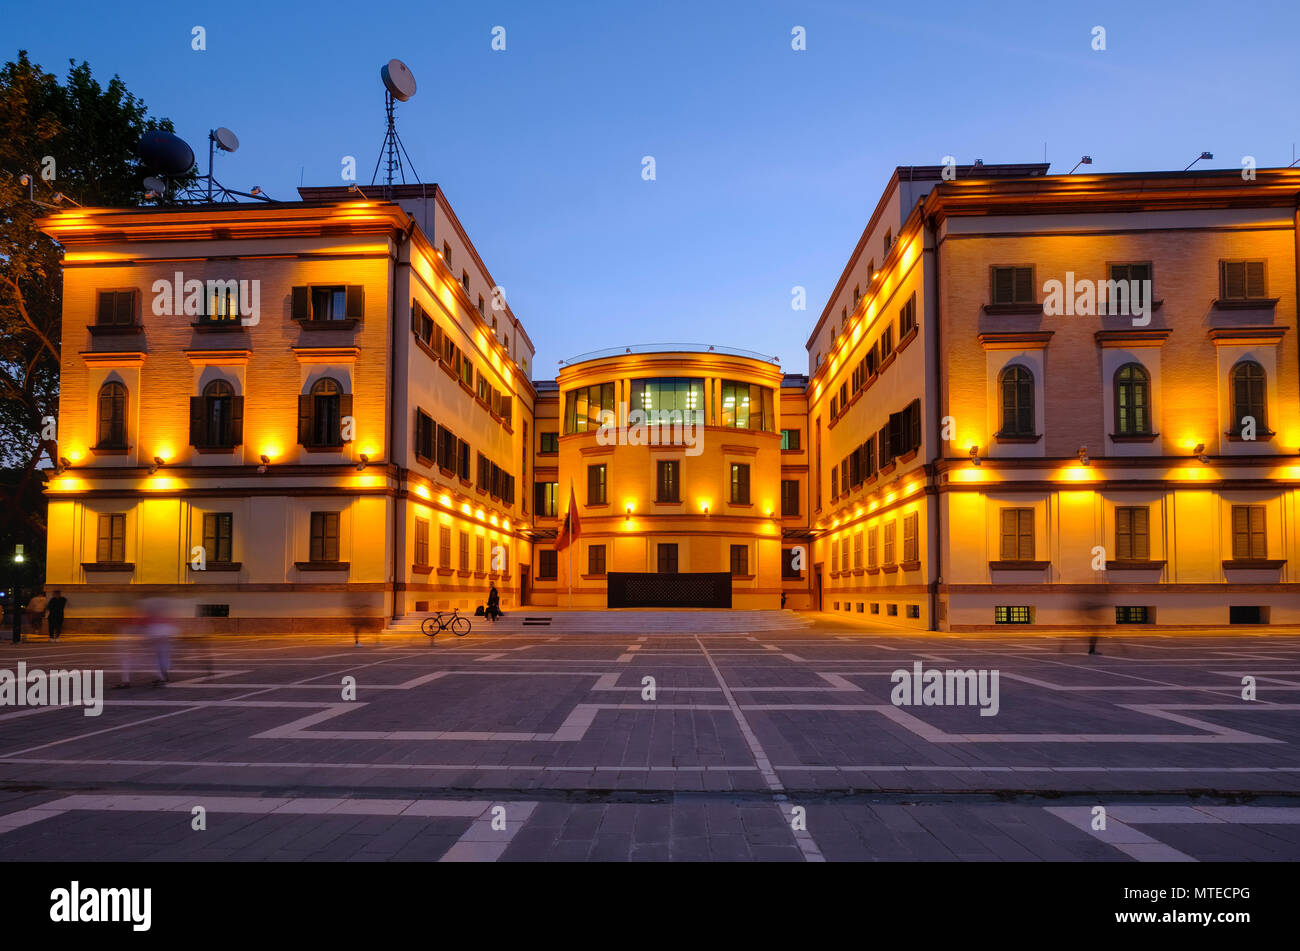 Albanian Ministry of the Interior, Twilight, Tirana, Albania - Stock Image